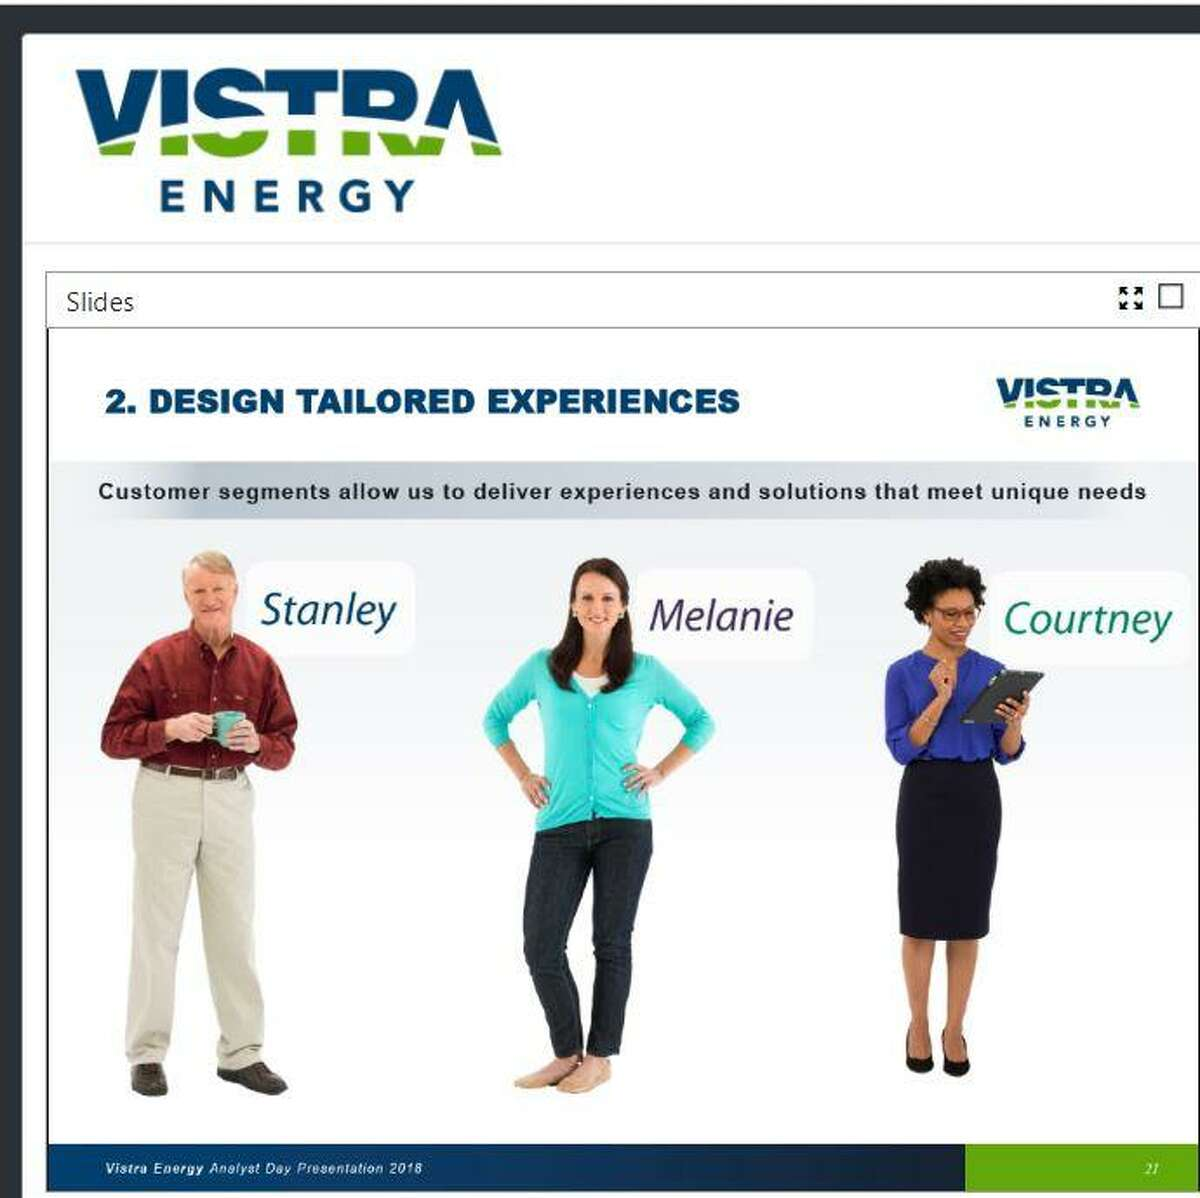 Vistra Energy profiles its customers so its agents can readily identify and respond to each customer type.